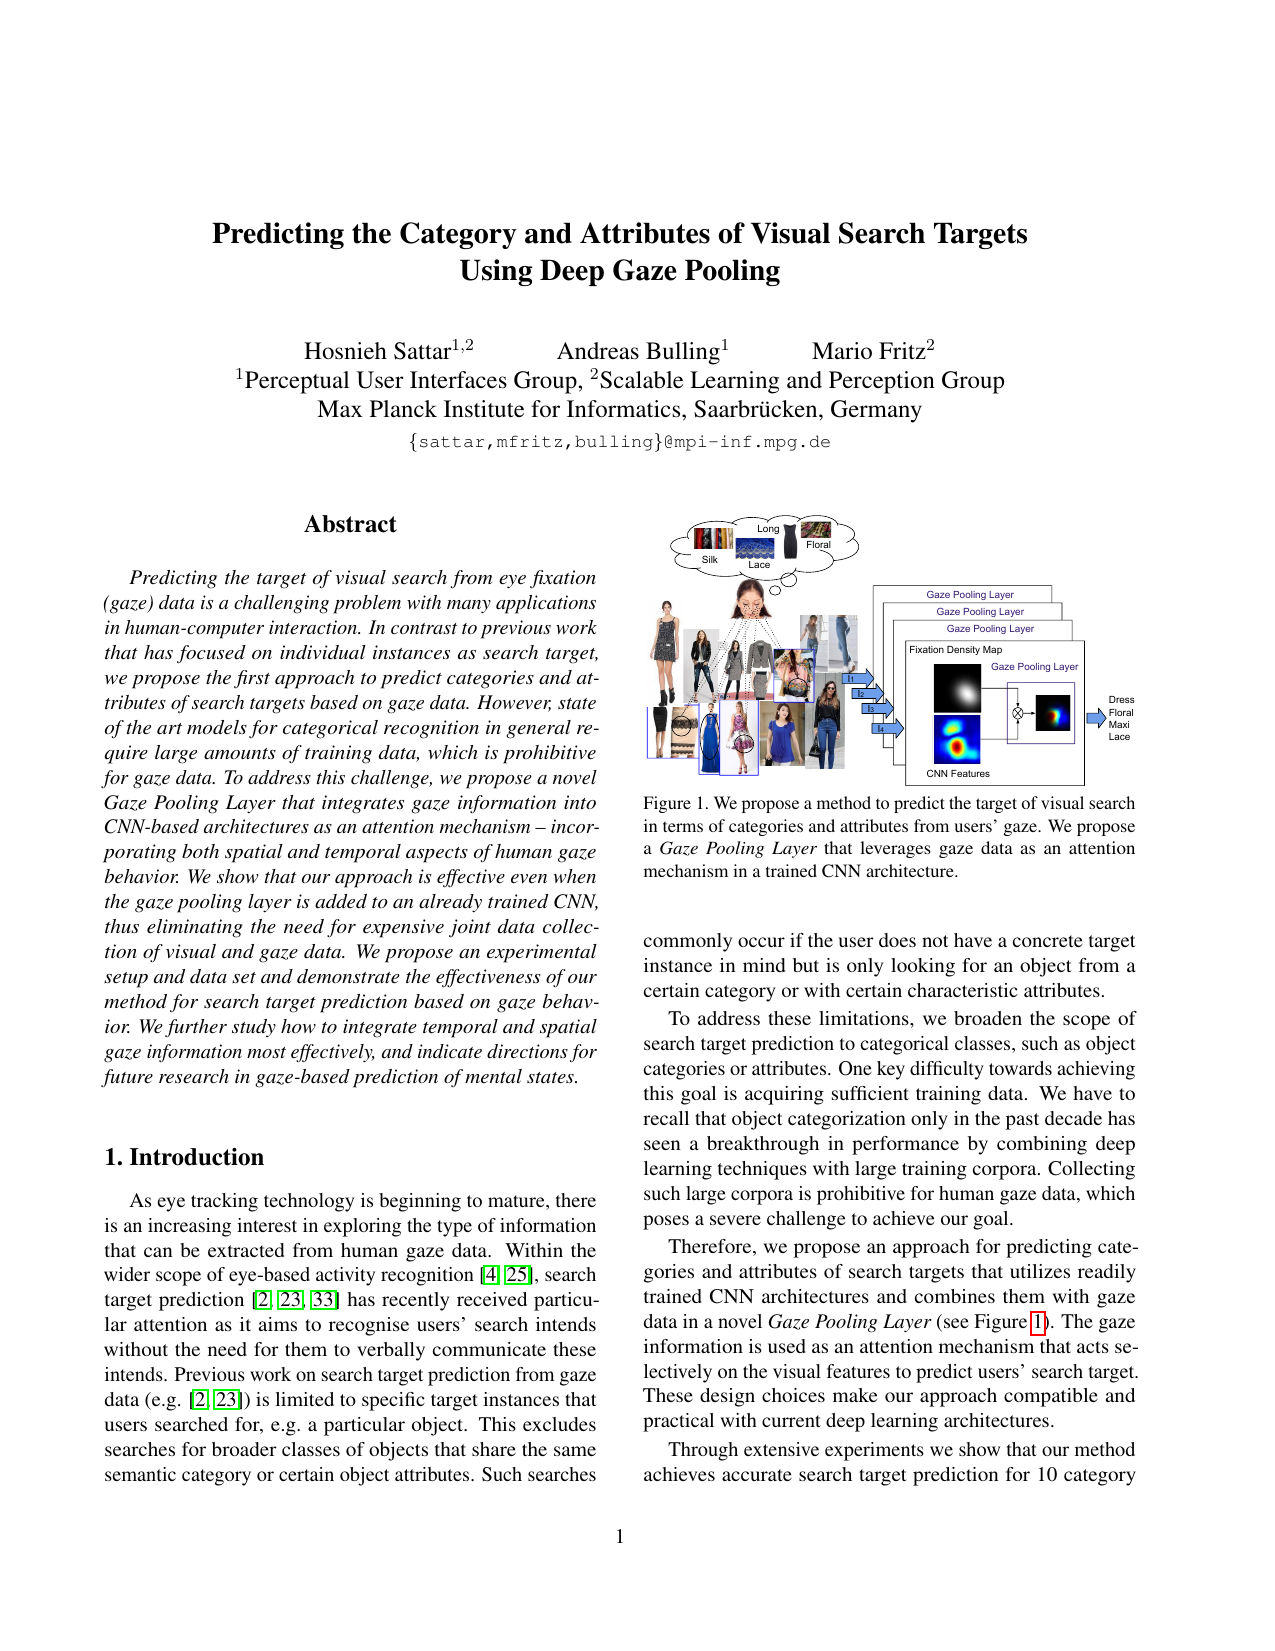 Predicting the Category and Attributes of Visual Search Targets Using Deep Gaze Pooling